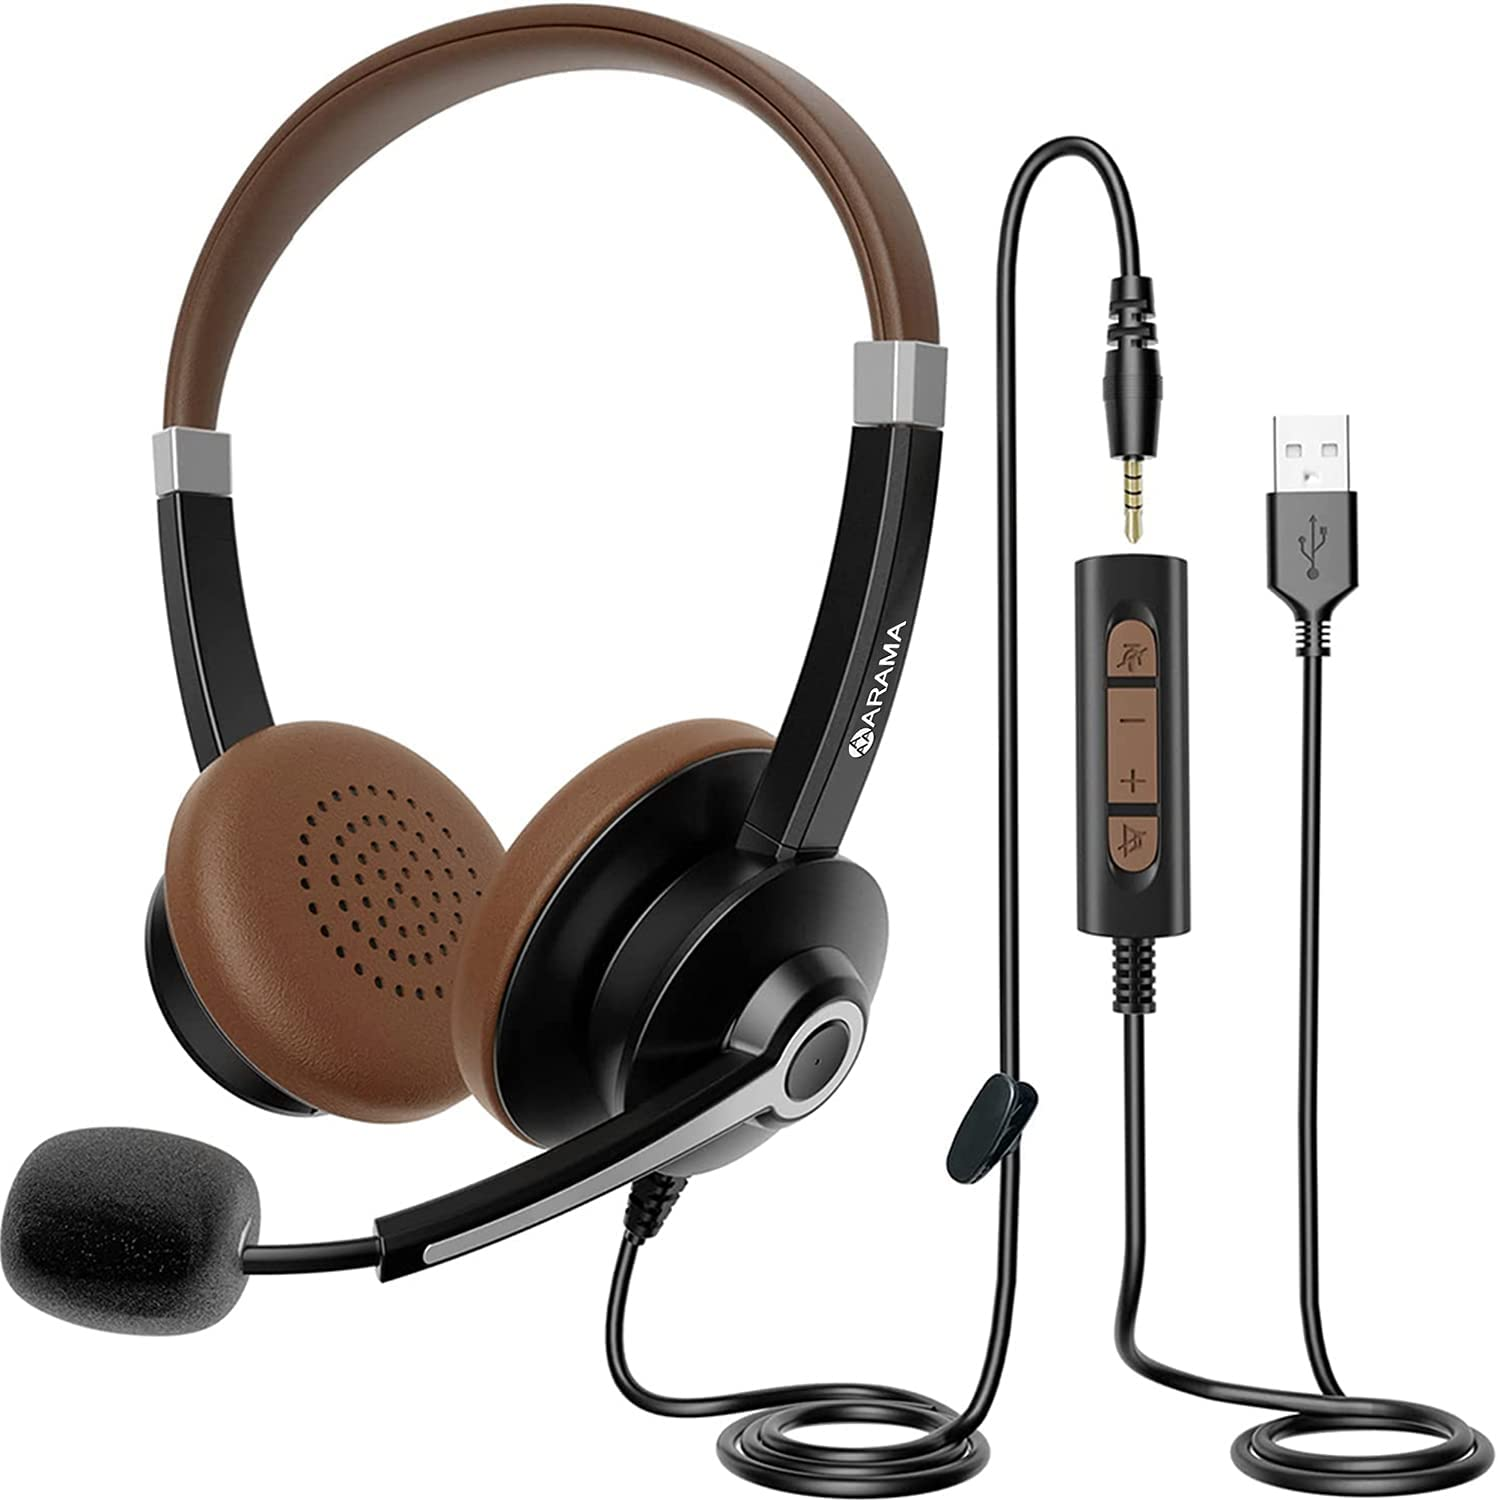 USB Headset with Microphone Noise Cancelling & in-line Call Controls, Ultra Comfort 3.5mm Wired Headset for Cell Phone, Computer Headset with Mute for PC Laptop Skype Webinar Home Office